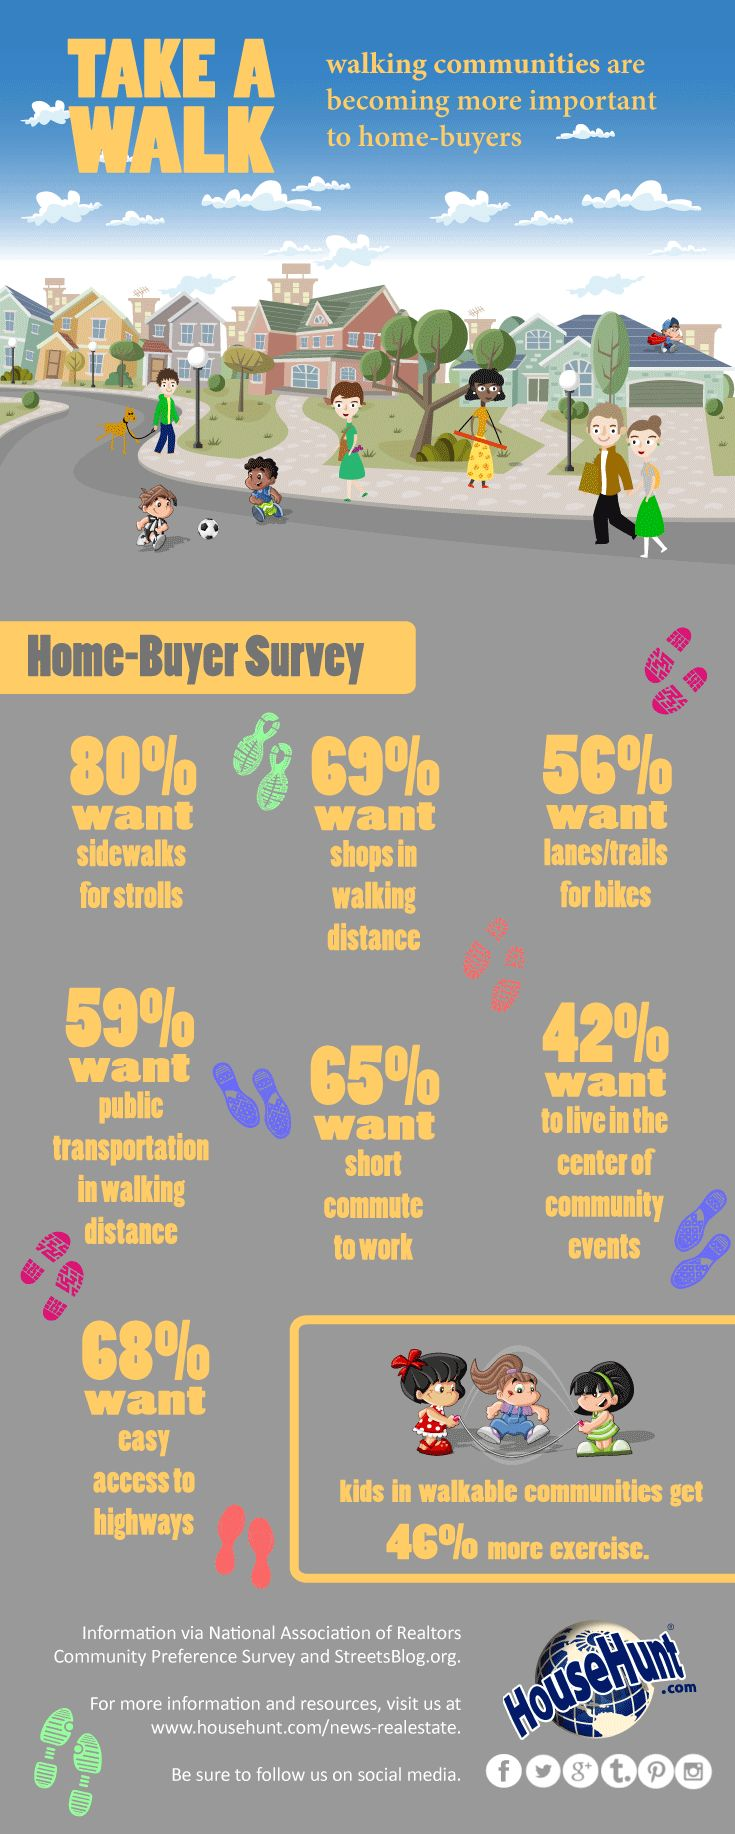 Home-Buyer Survey